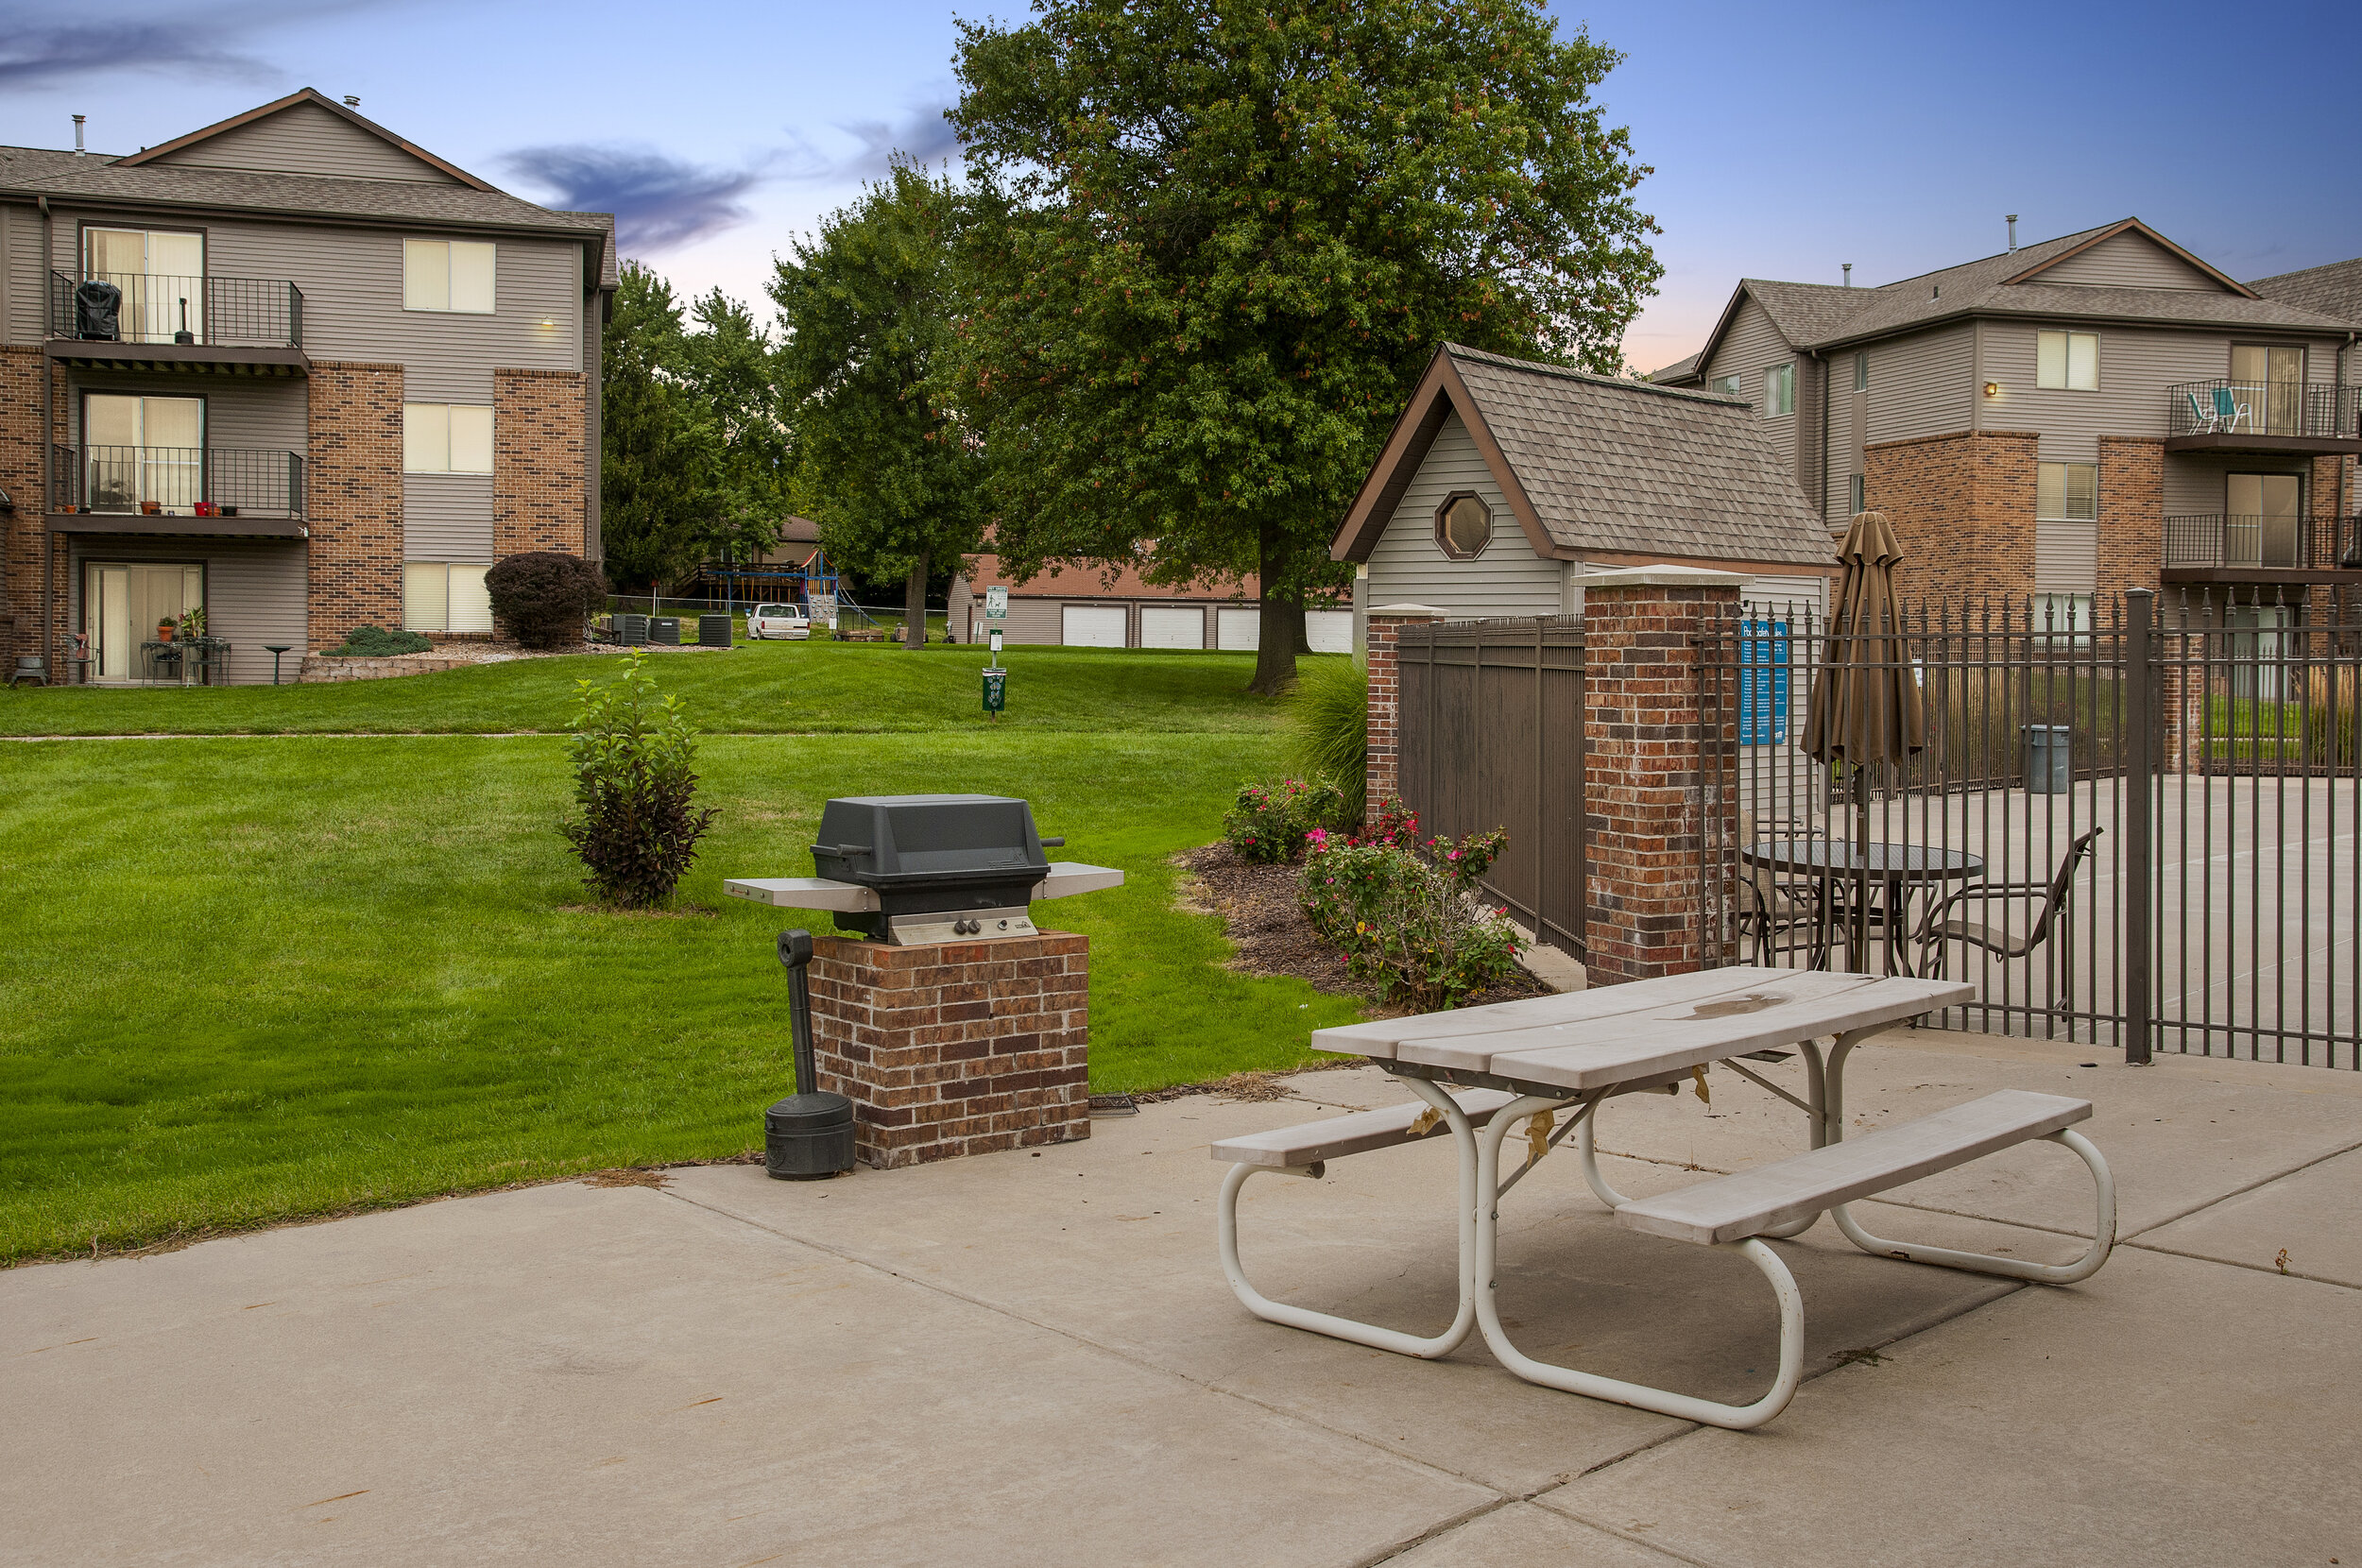 13 Beautifully Landscaped Grounds featuring Community BBQ Grill _ Picnic Area.jpg